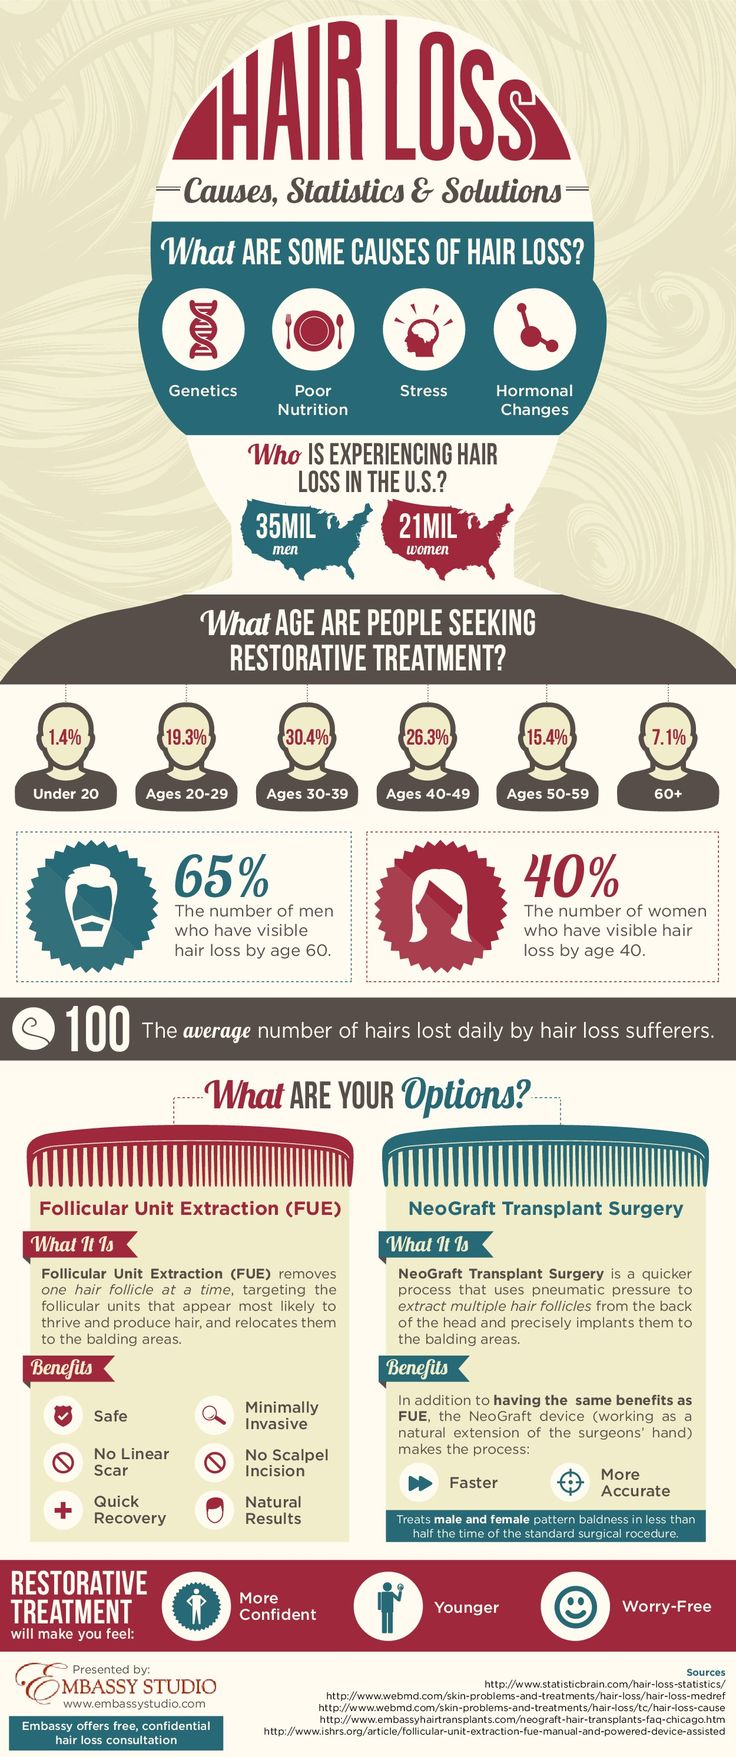 Hair Loss: Causes, Statistics & Solutions